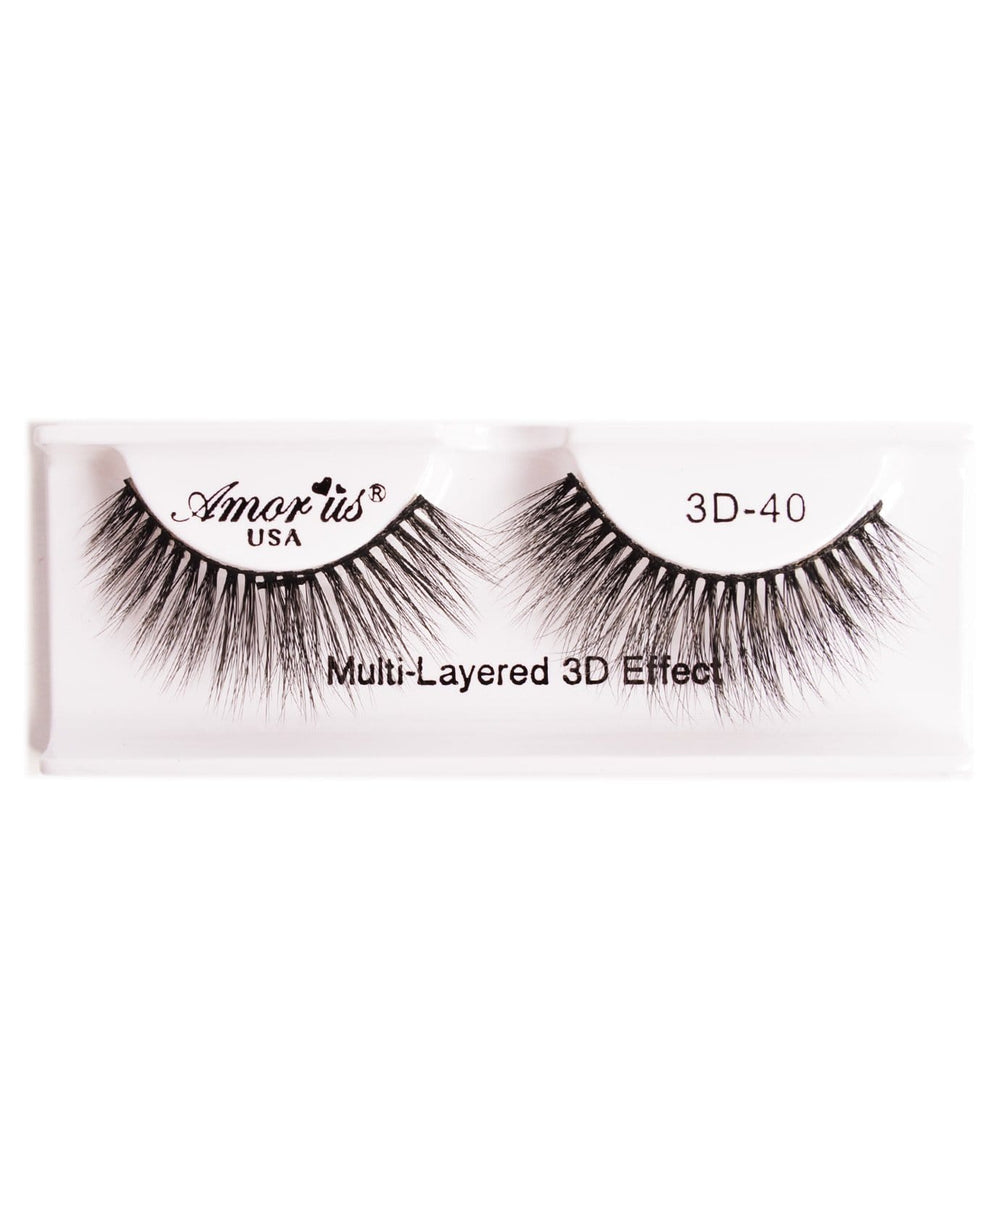 Amor Us 3D Faux Mink Eyelashes- 40, Eyelash